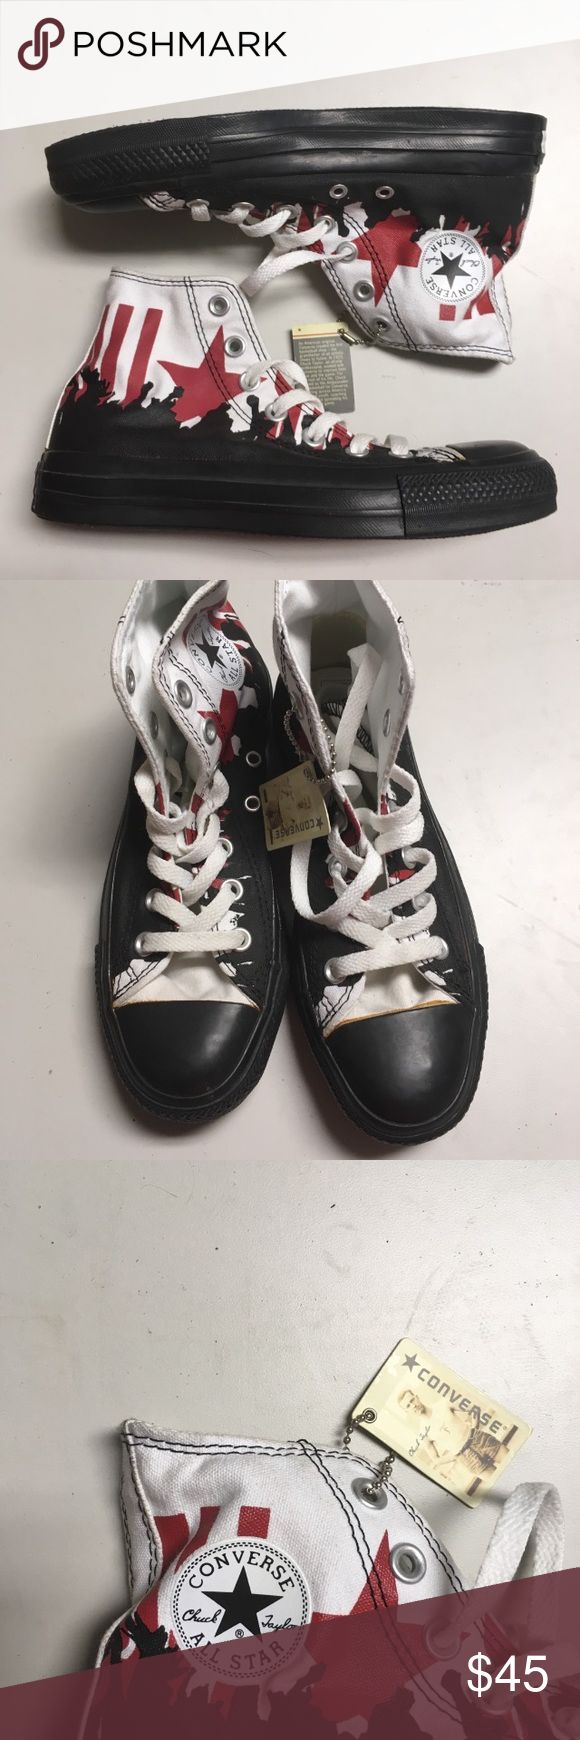 Converse Black, White & Red High Top Sneakers BRAND NEW WITH TAGS. Everyone needs a pair of fashionable and functional Converse! Converse Shoes